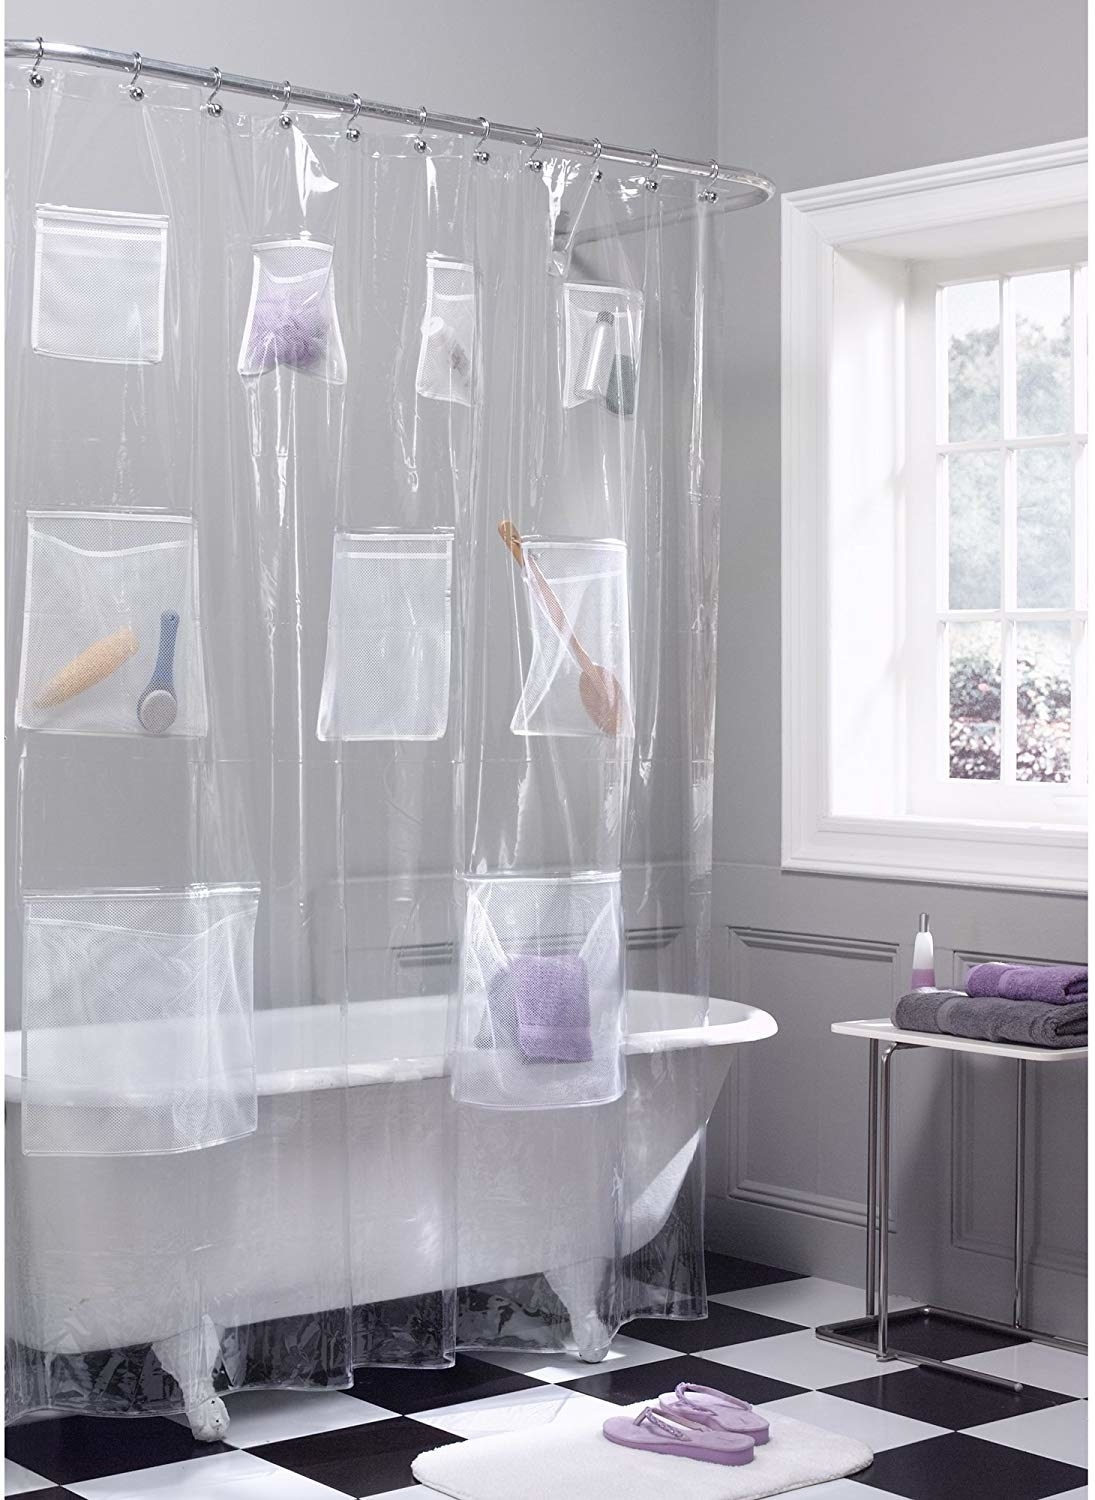 a clear shower curtain with pockets in it